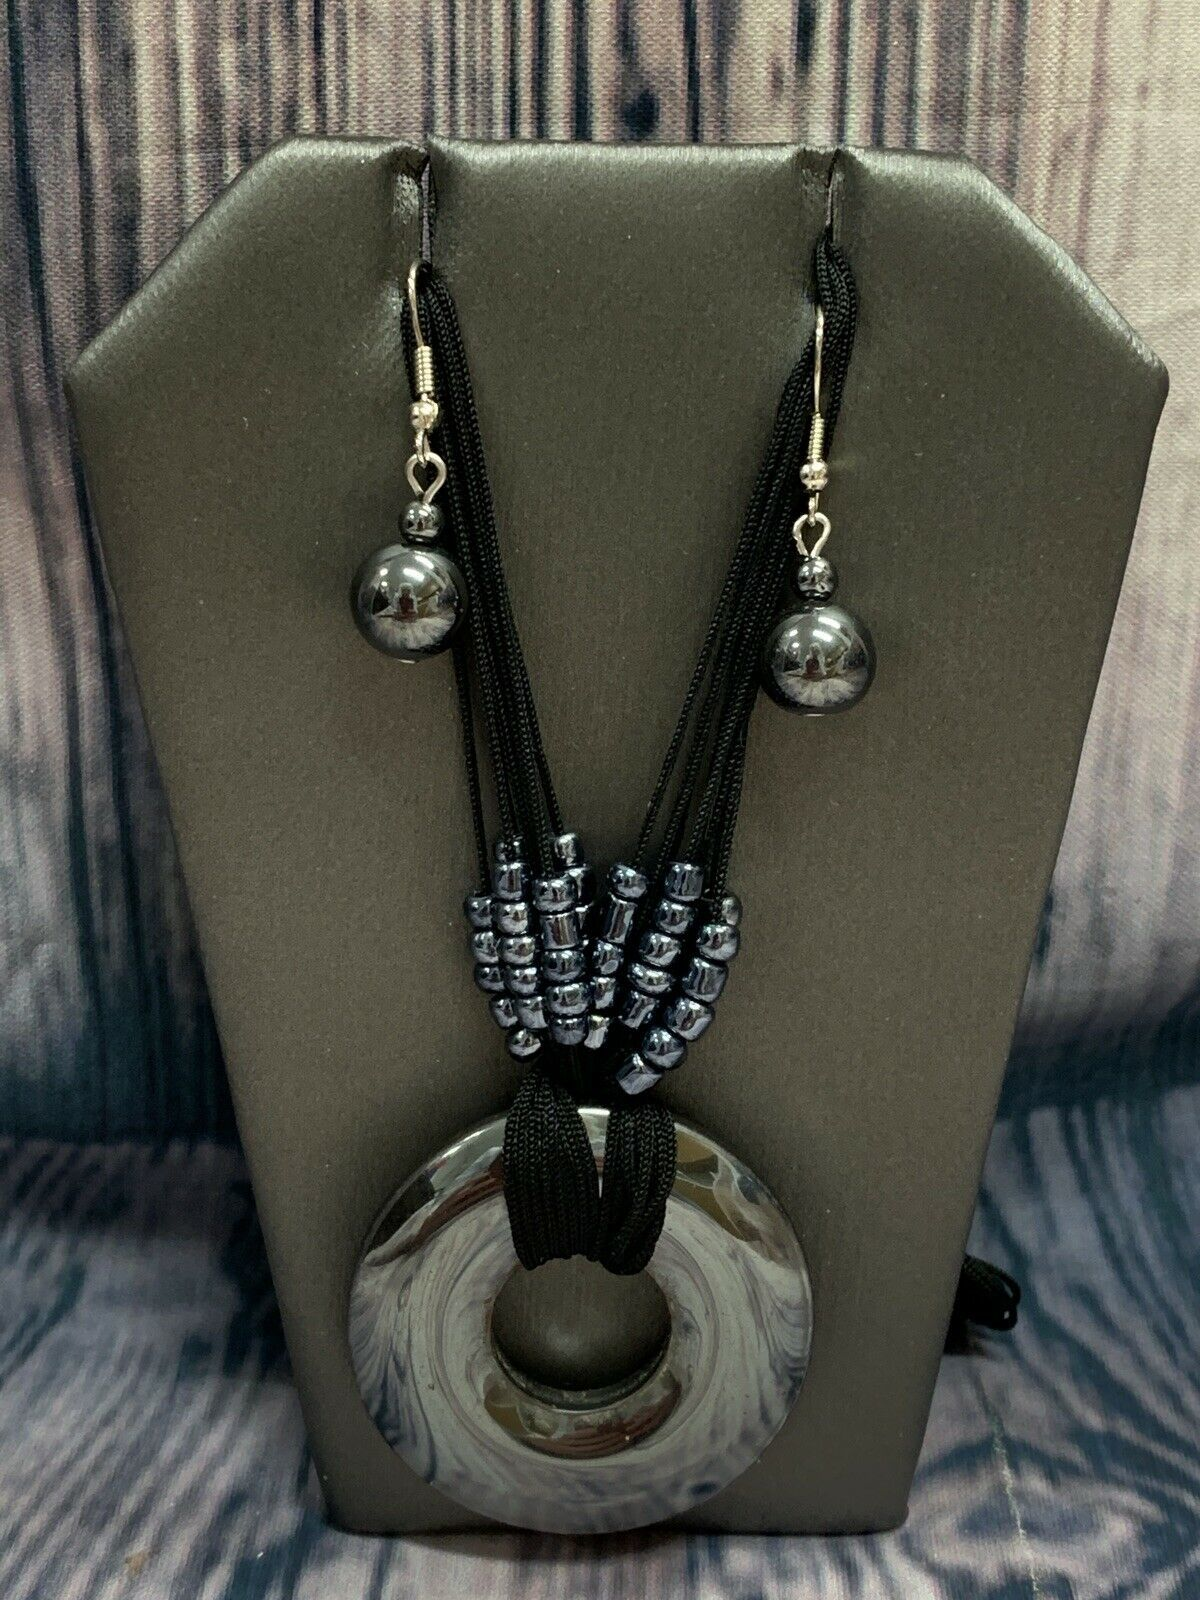 Primary image for Fashion Jewelry Hematite Necklace And Earring Set